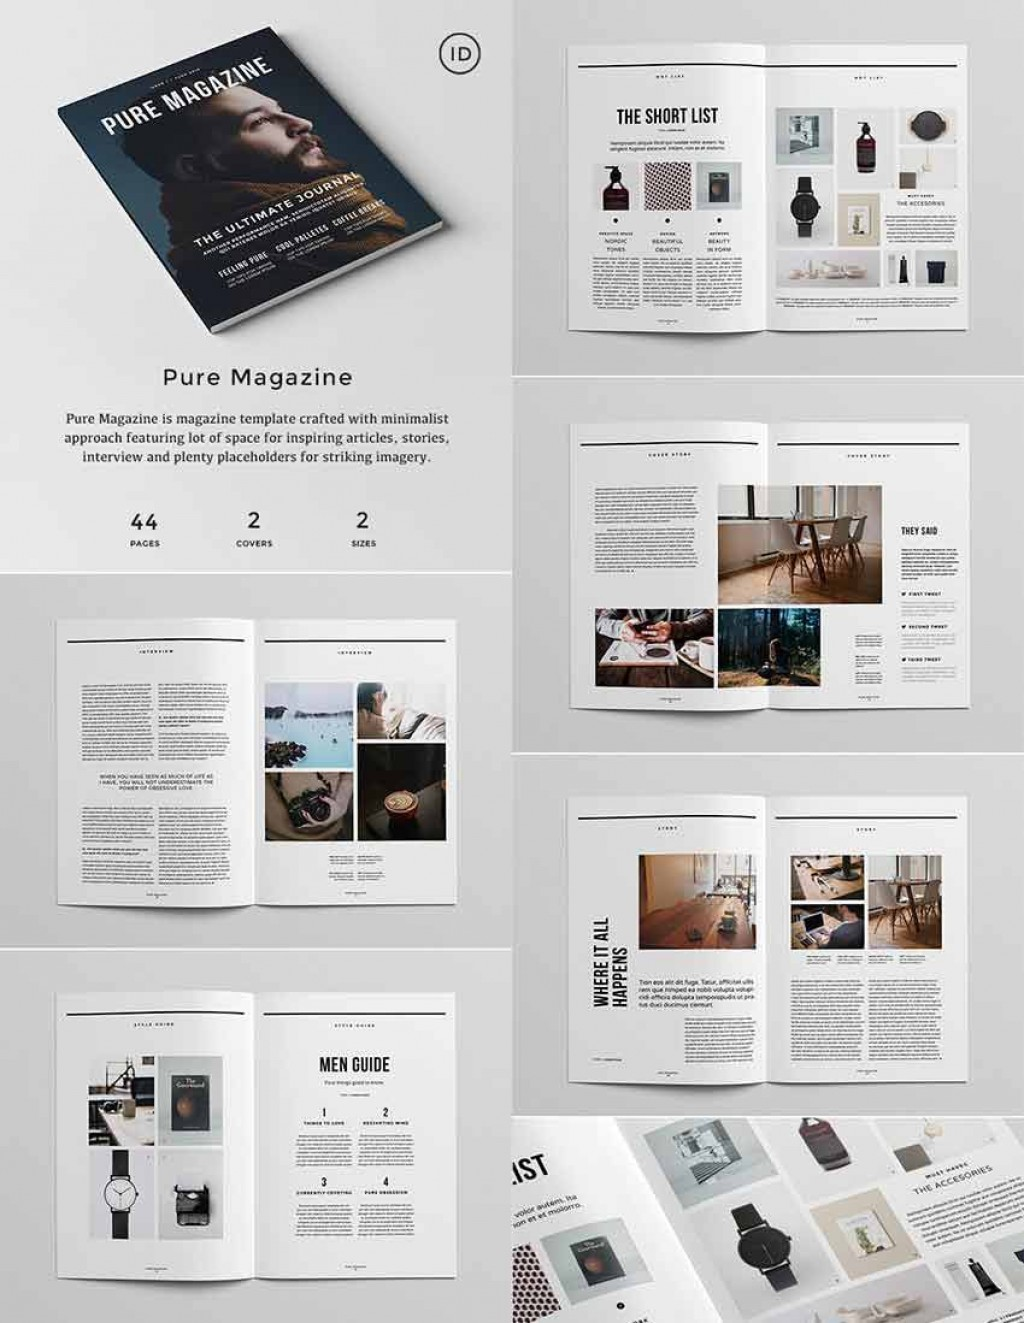 006 Archaicawful Magazine Template For Microsoft Word Inspiration  Layout Design DownloadLarge